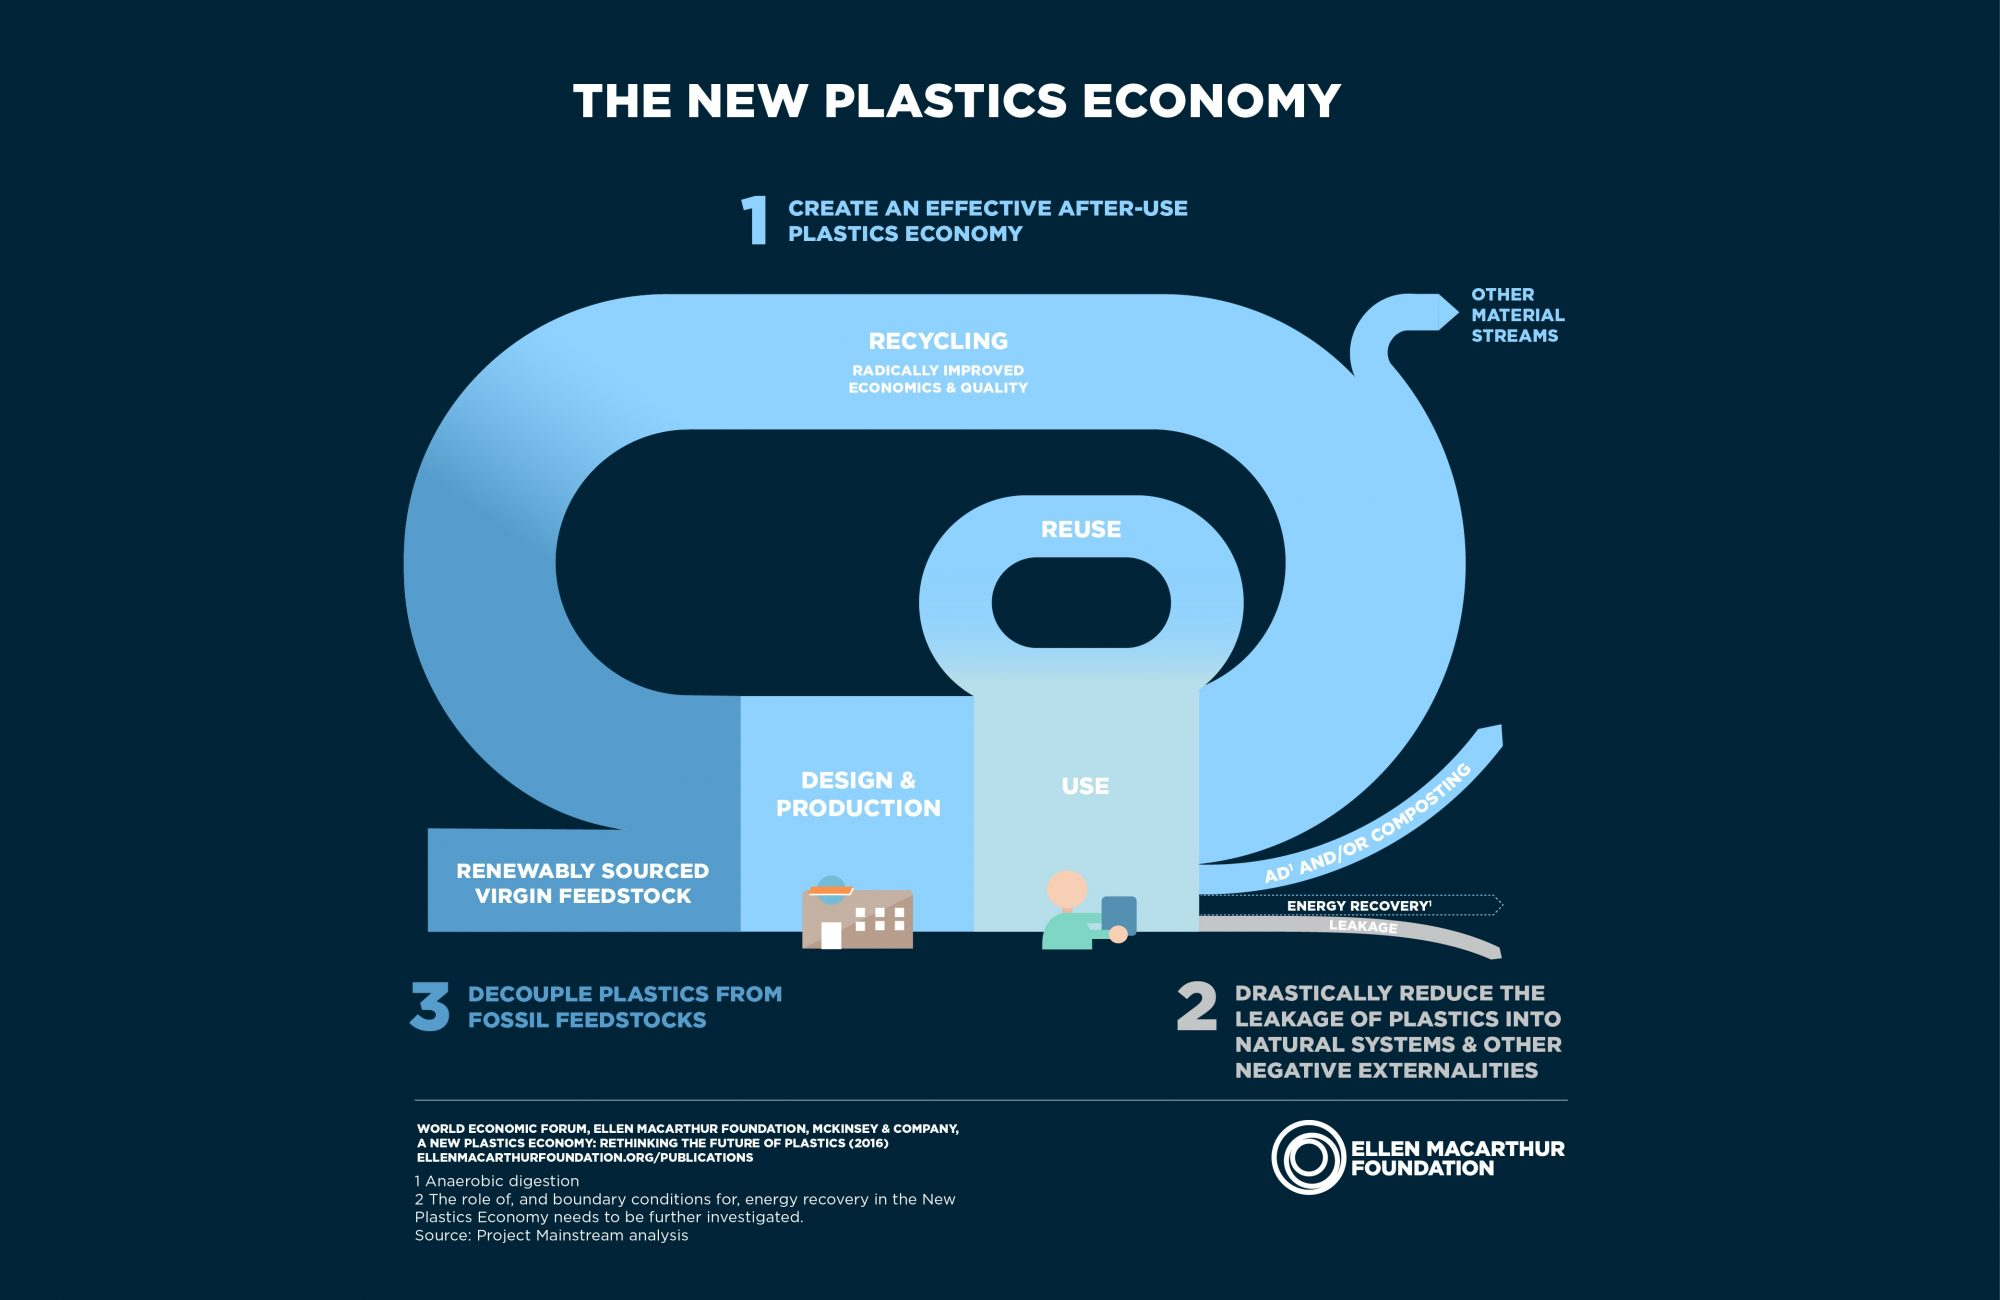 Unilever to pioneer breakthrough recycling technology